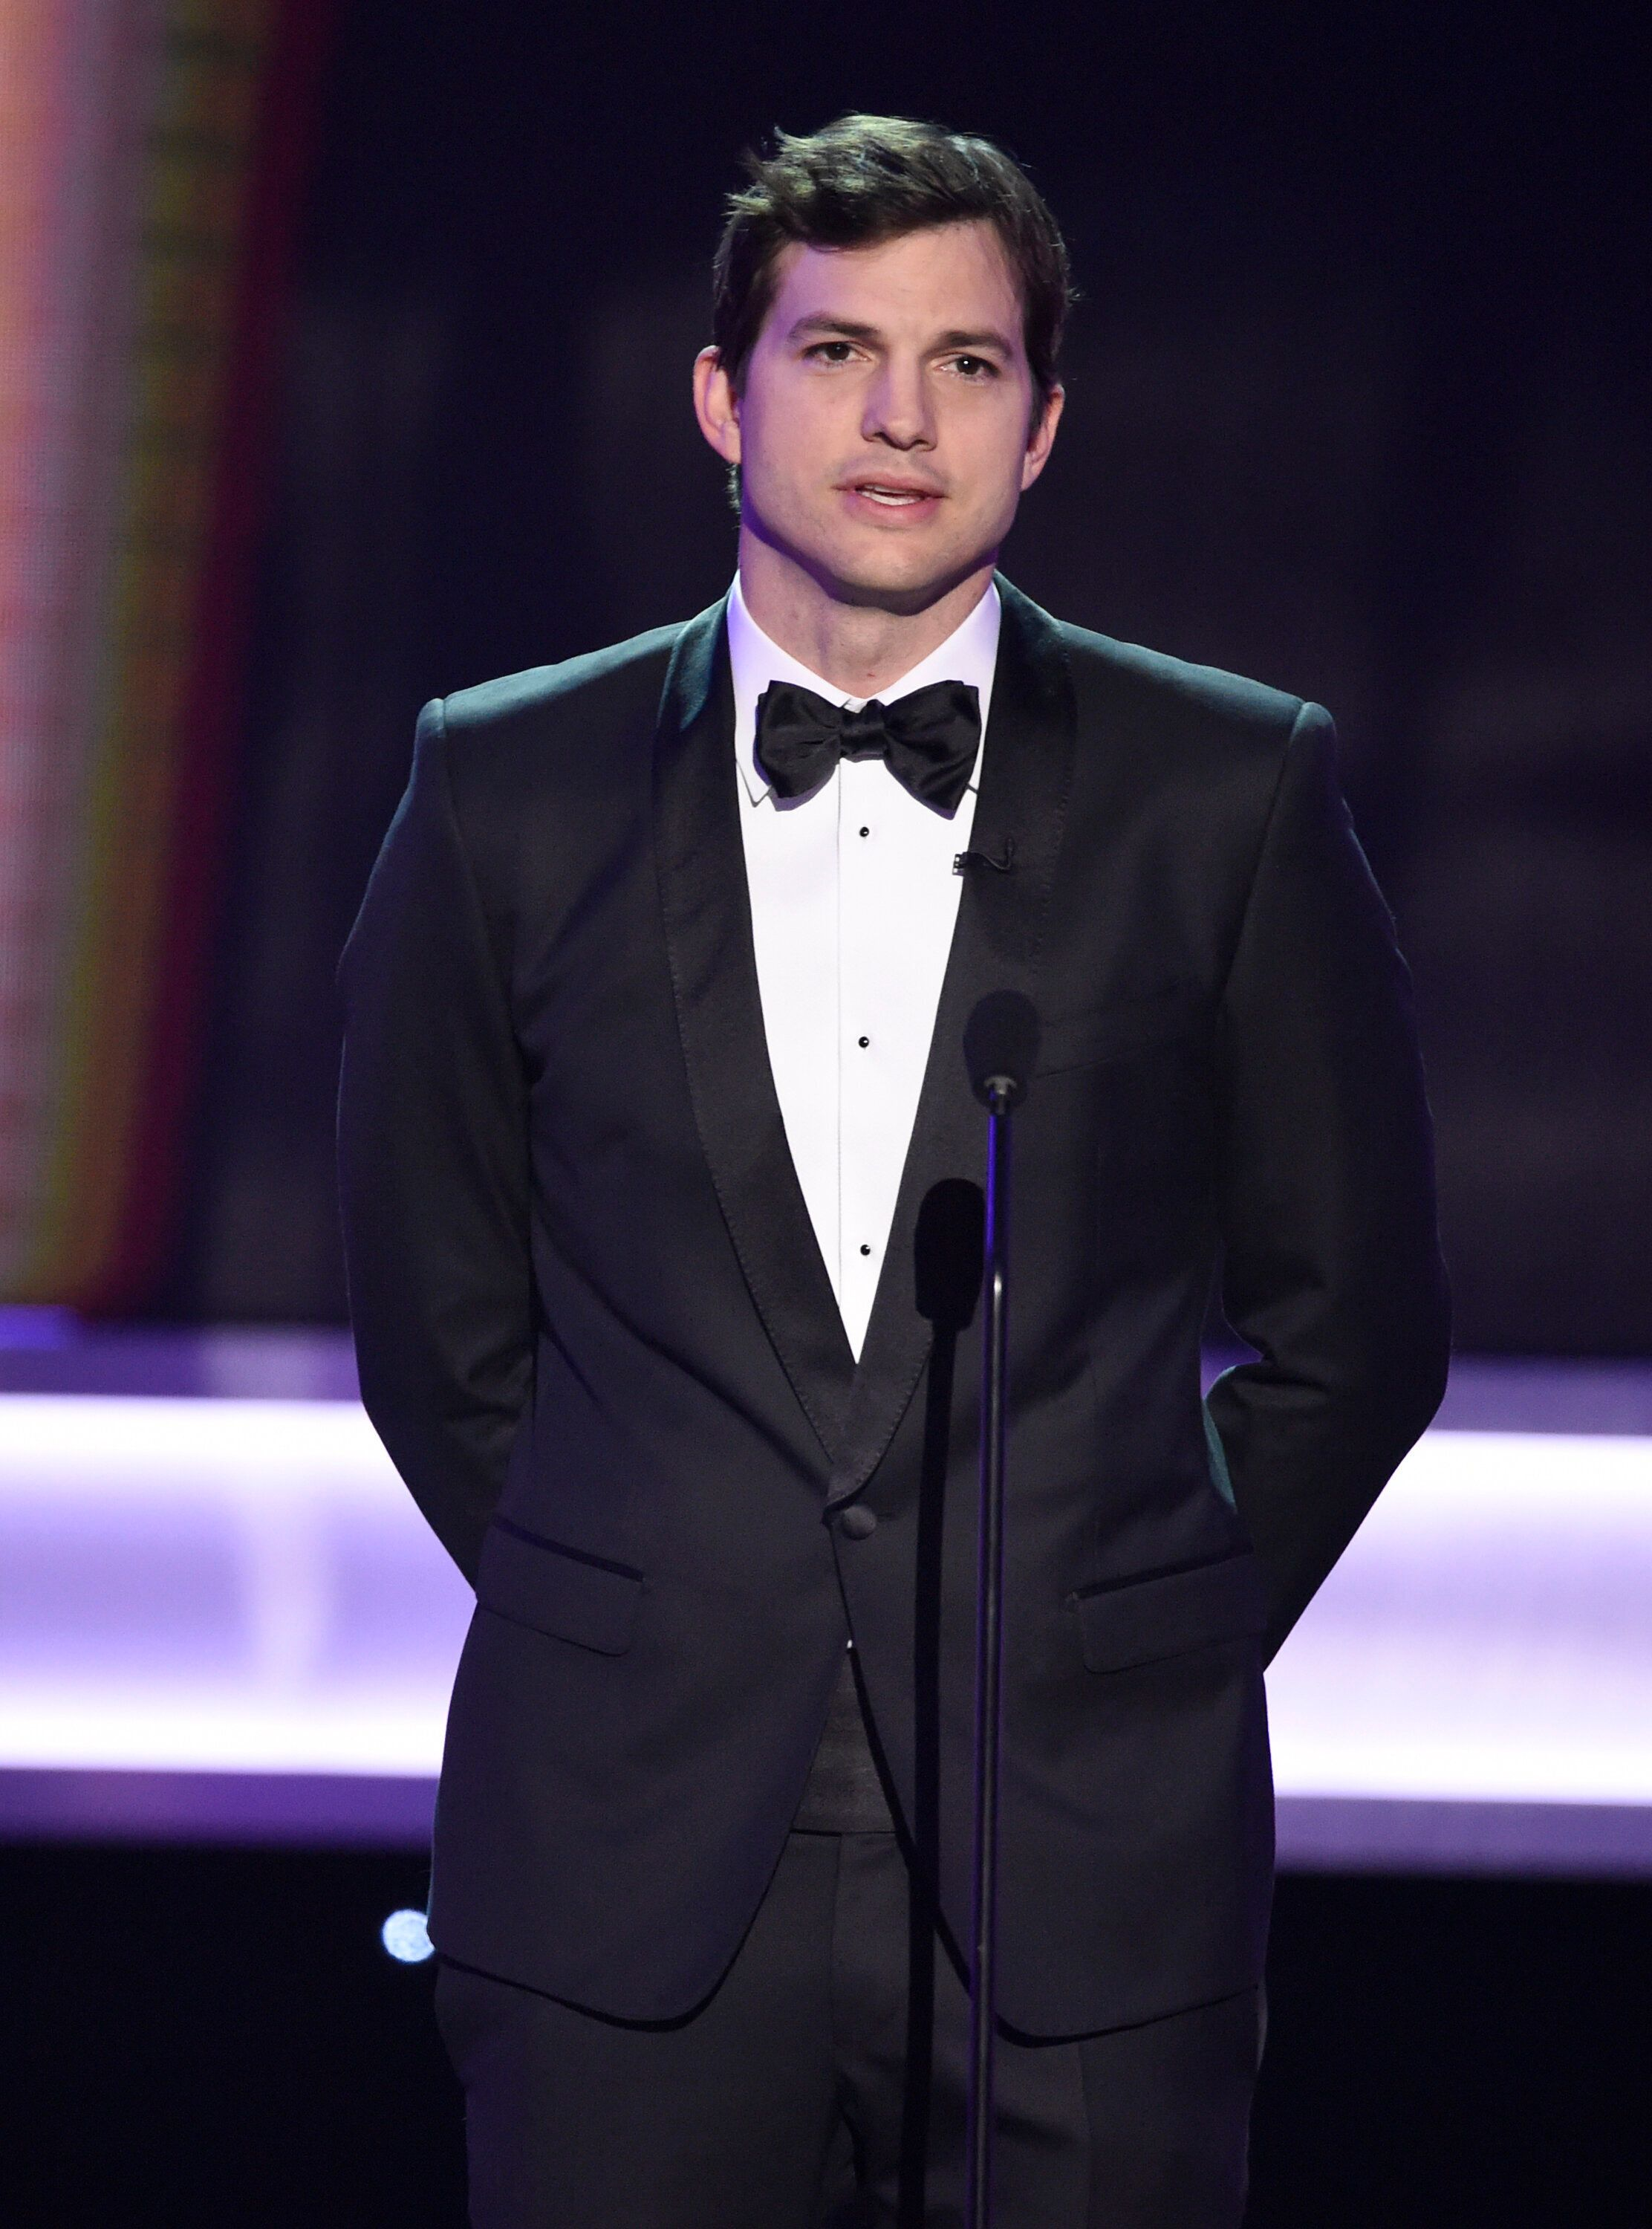 Ashton Kutcher presents the award for outstanding performance by a female actor in a comedy series at the 23rd annual Screen Actors Guild Awards at the Shrine Auditorium & Expo Hall on Sunday, Jan. 29, 2017, in Los Angeles. (Photo by Chris Pizzello/Invision/AP)